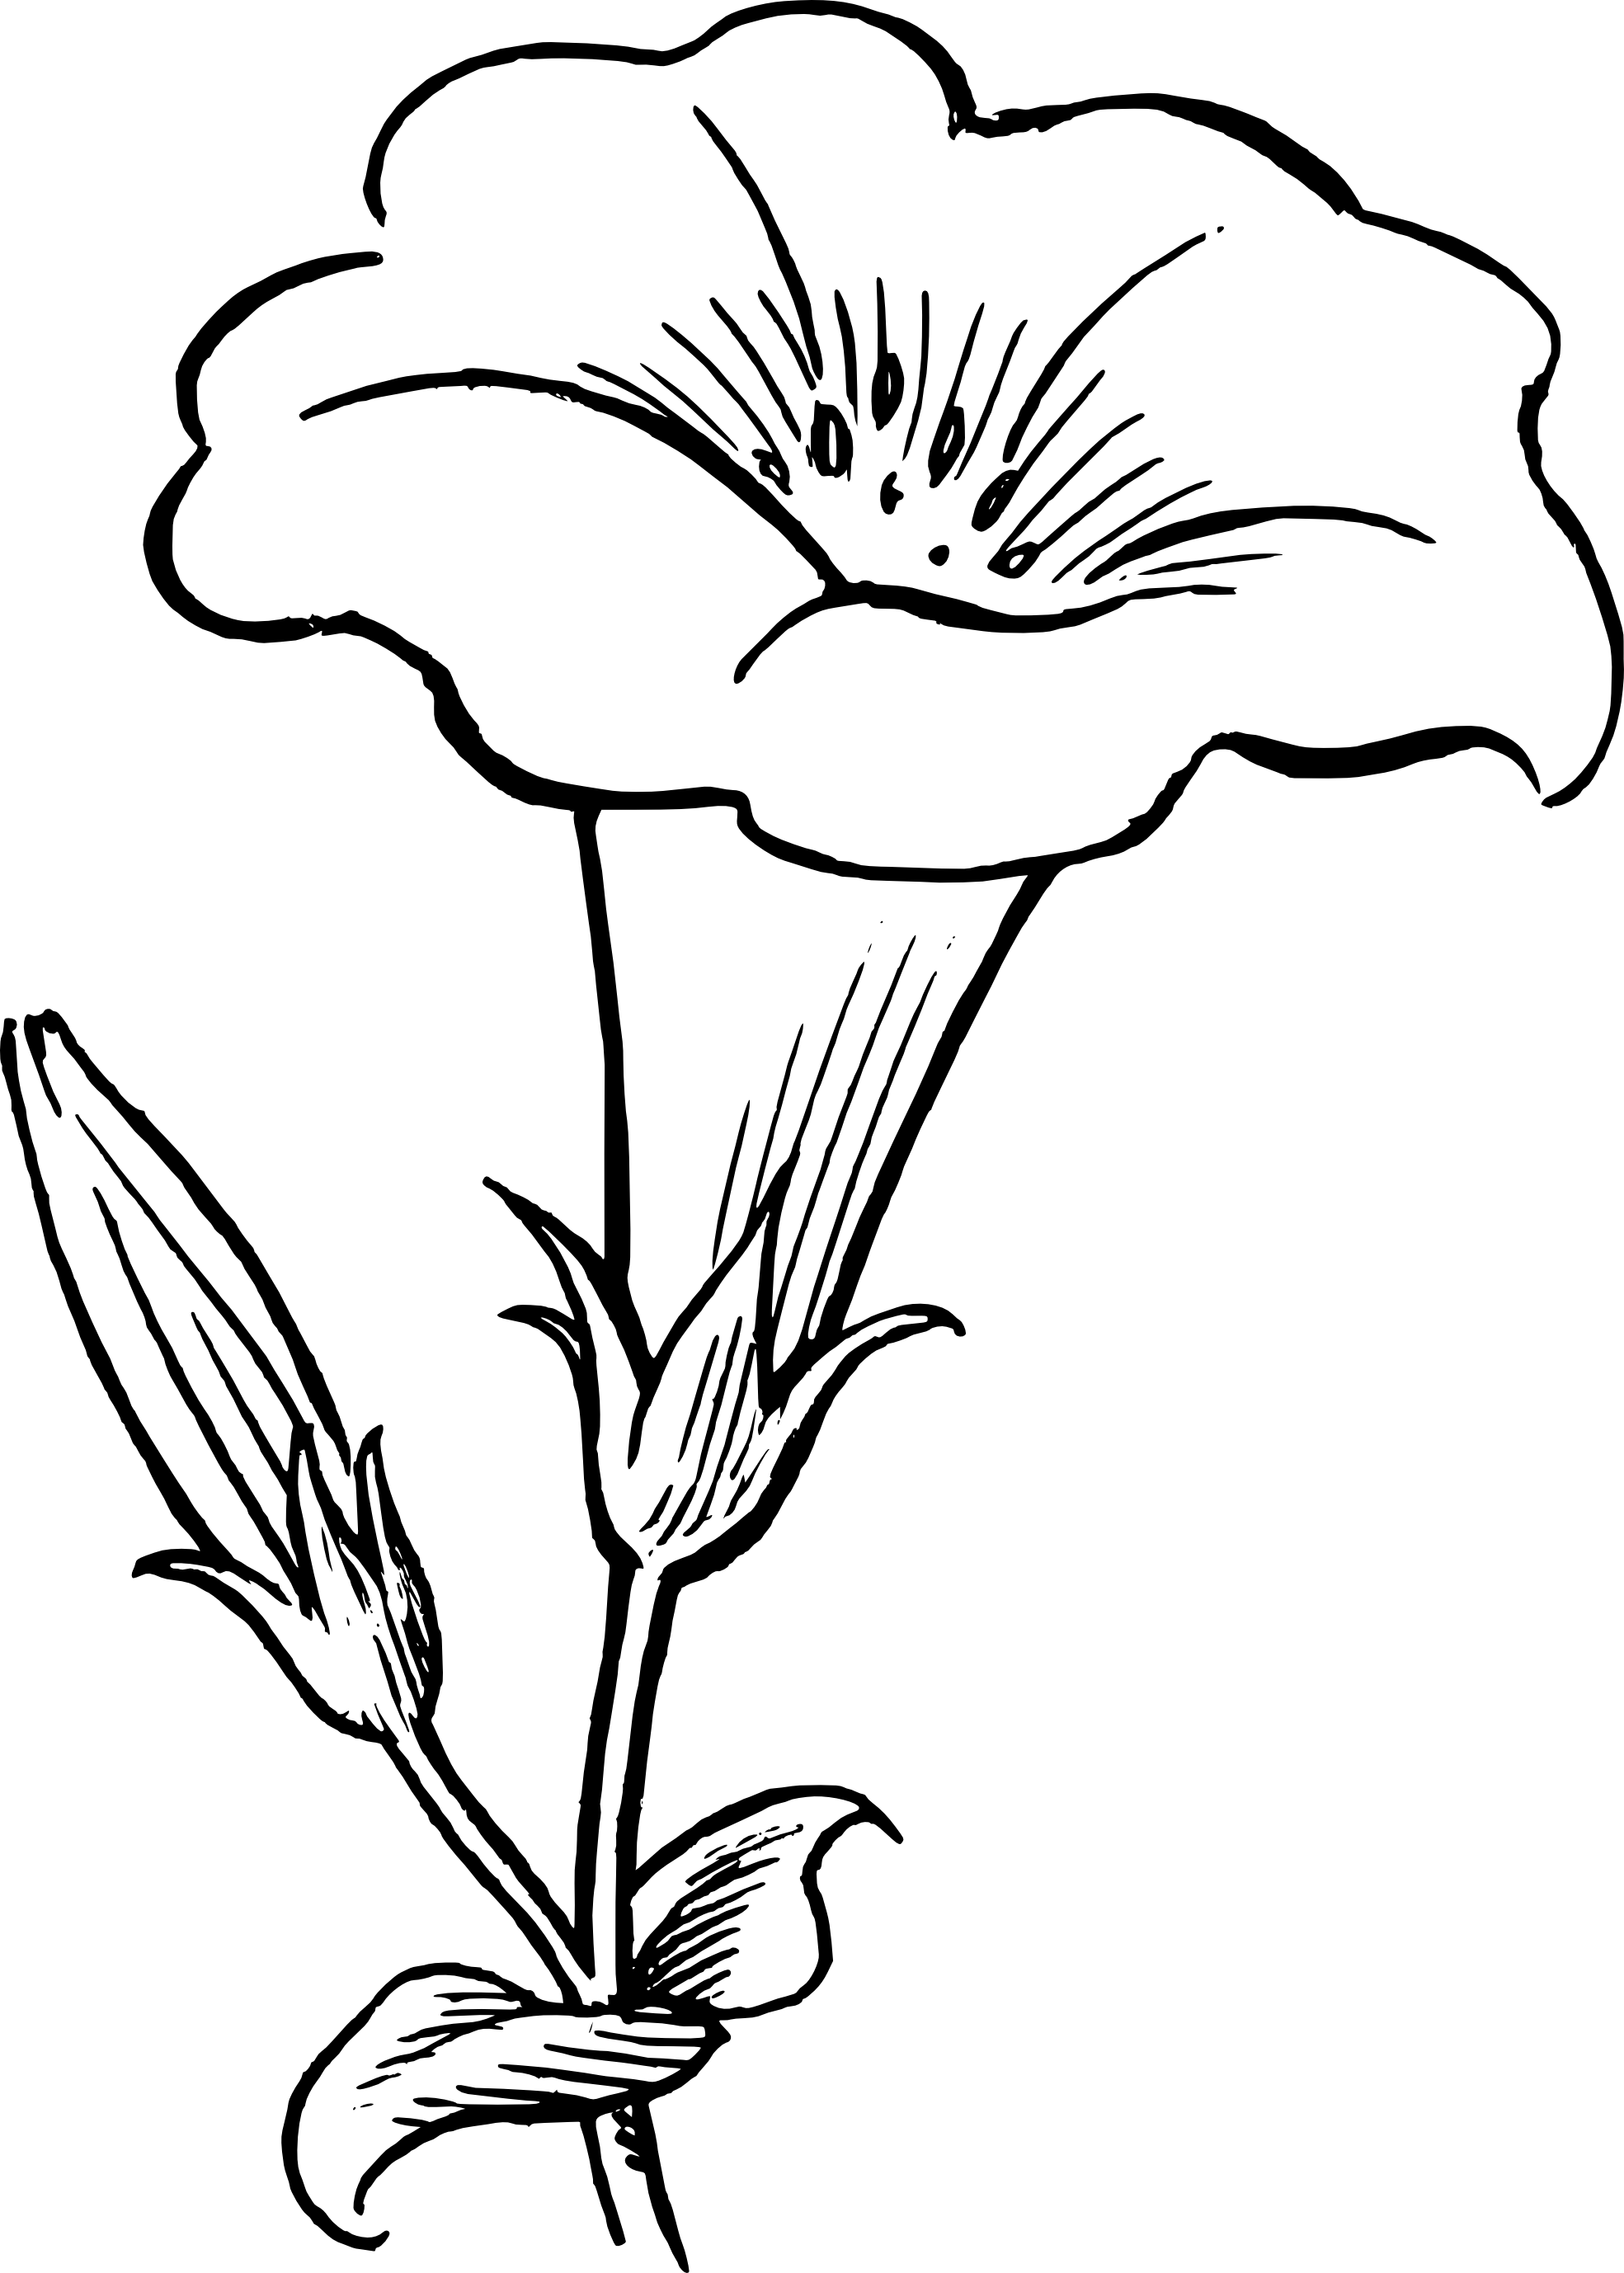 Line drawing of flowers clipart royalty free download Best Flower Clipart Black And White #13540 - Clipartion.com royalty free download